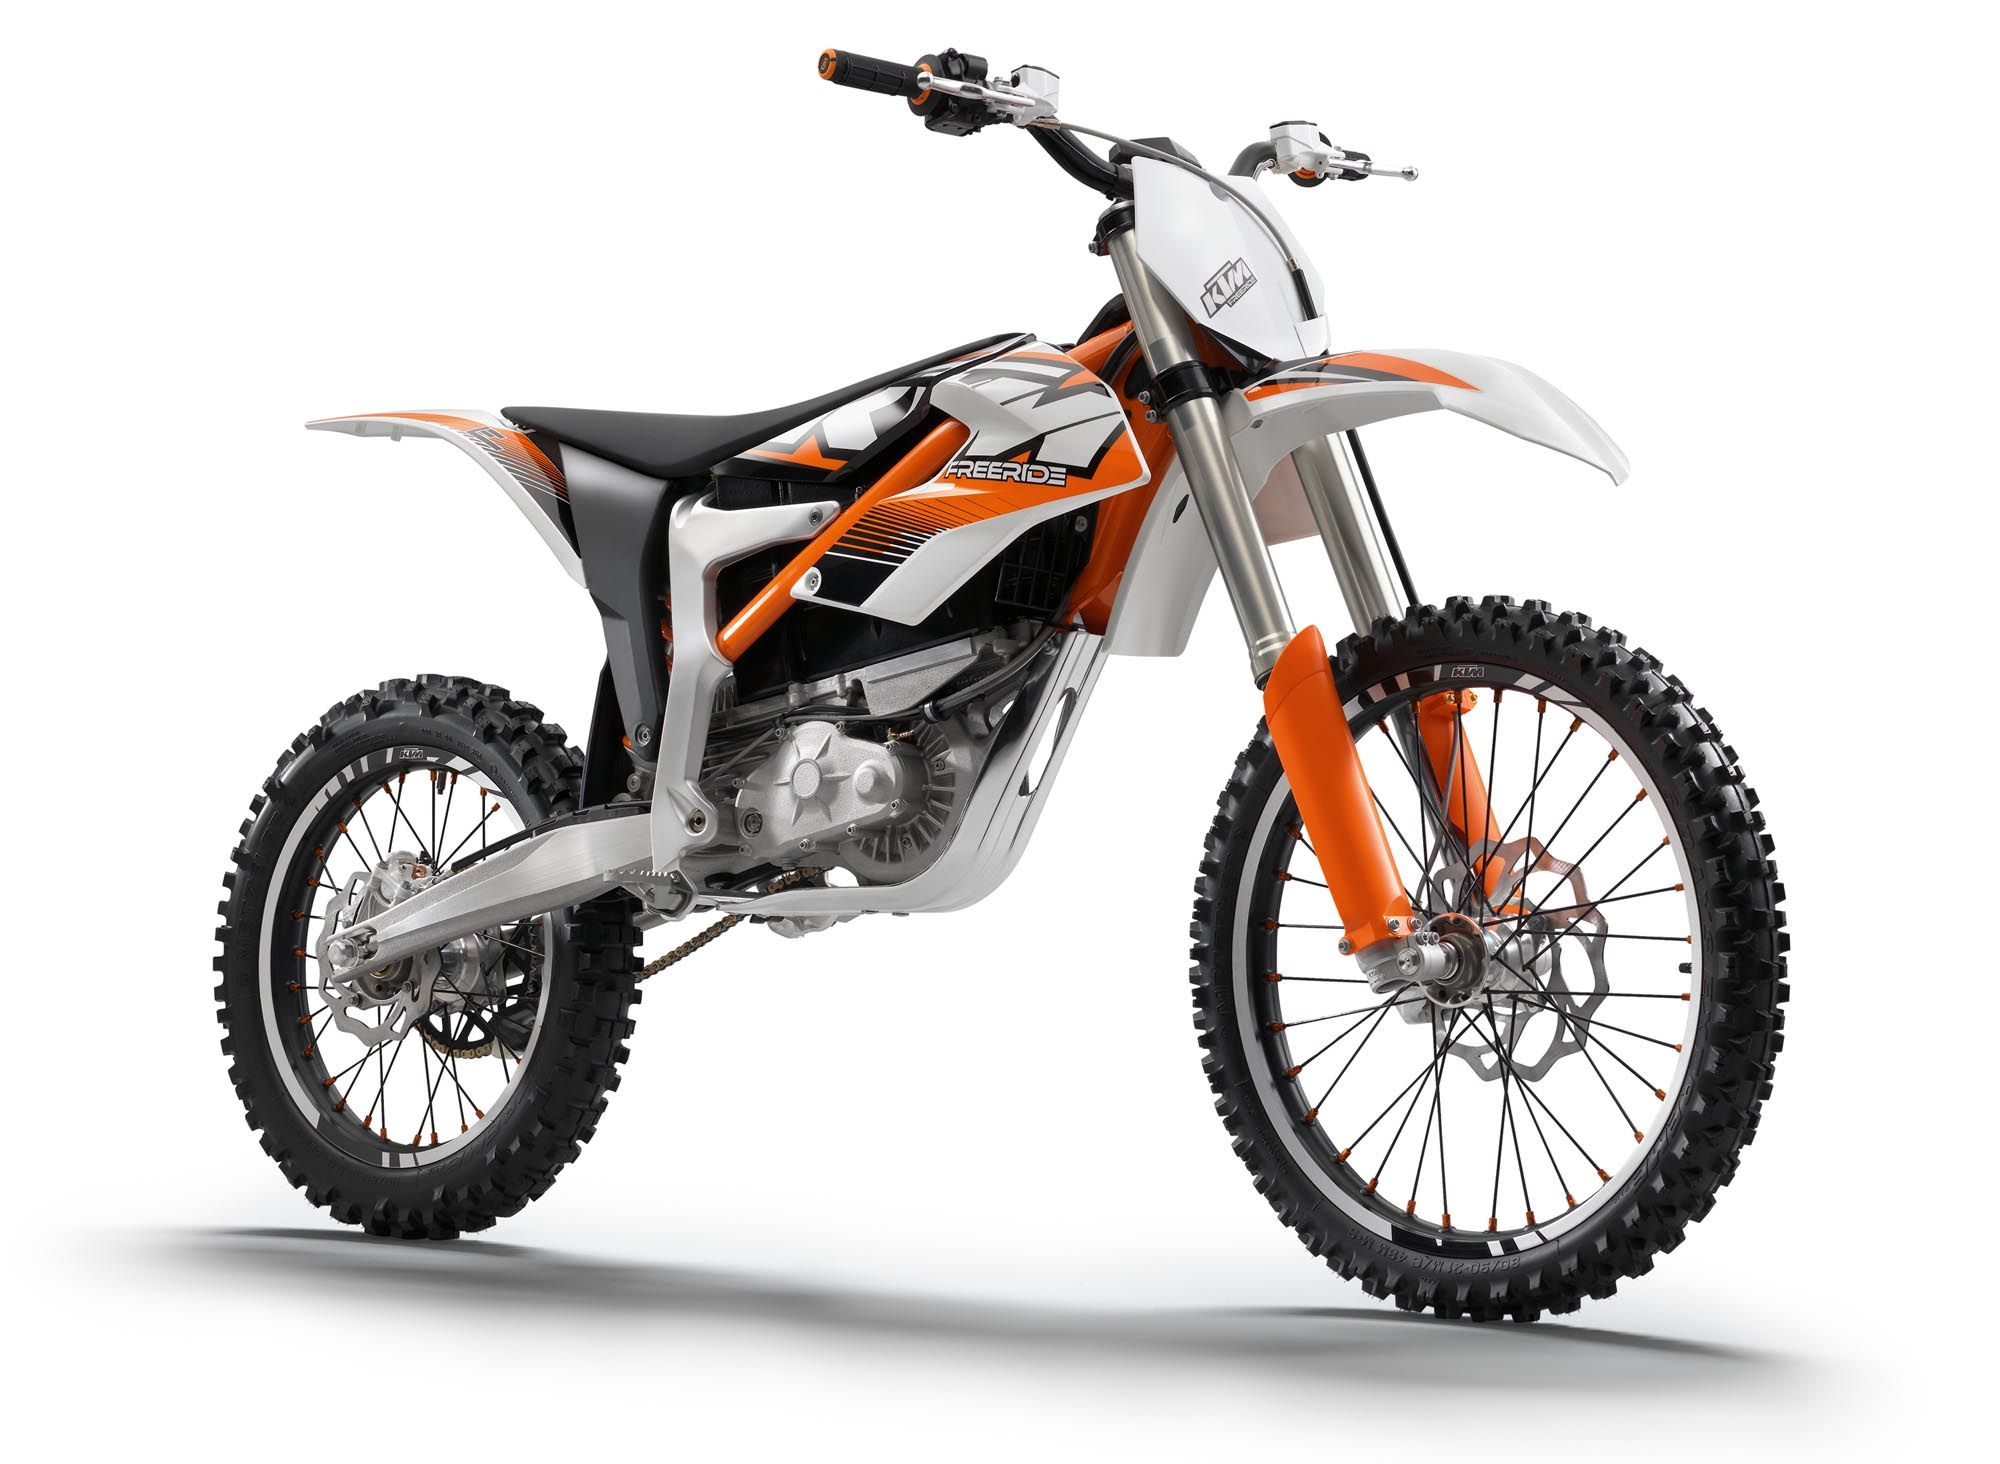 Ktm Freeride E 10 000 Electric Dirt Bike First Proper Electric